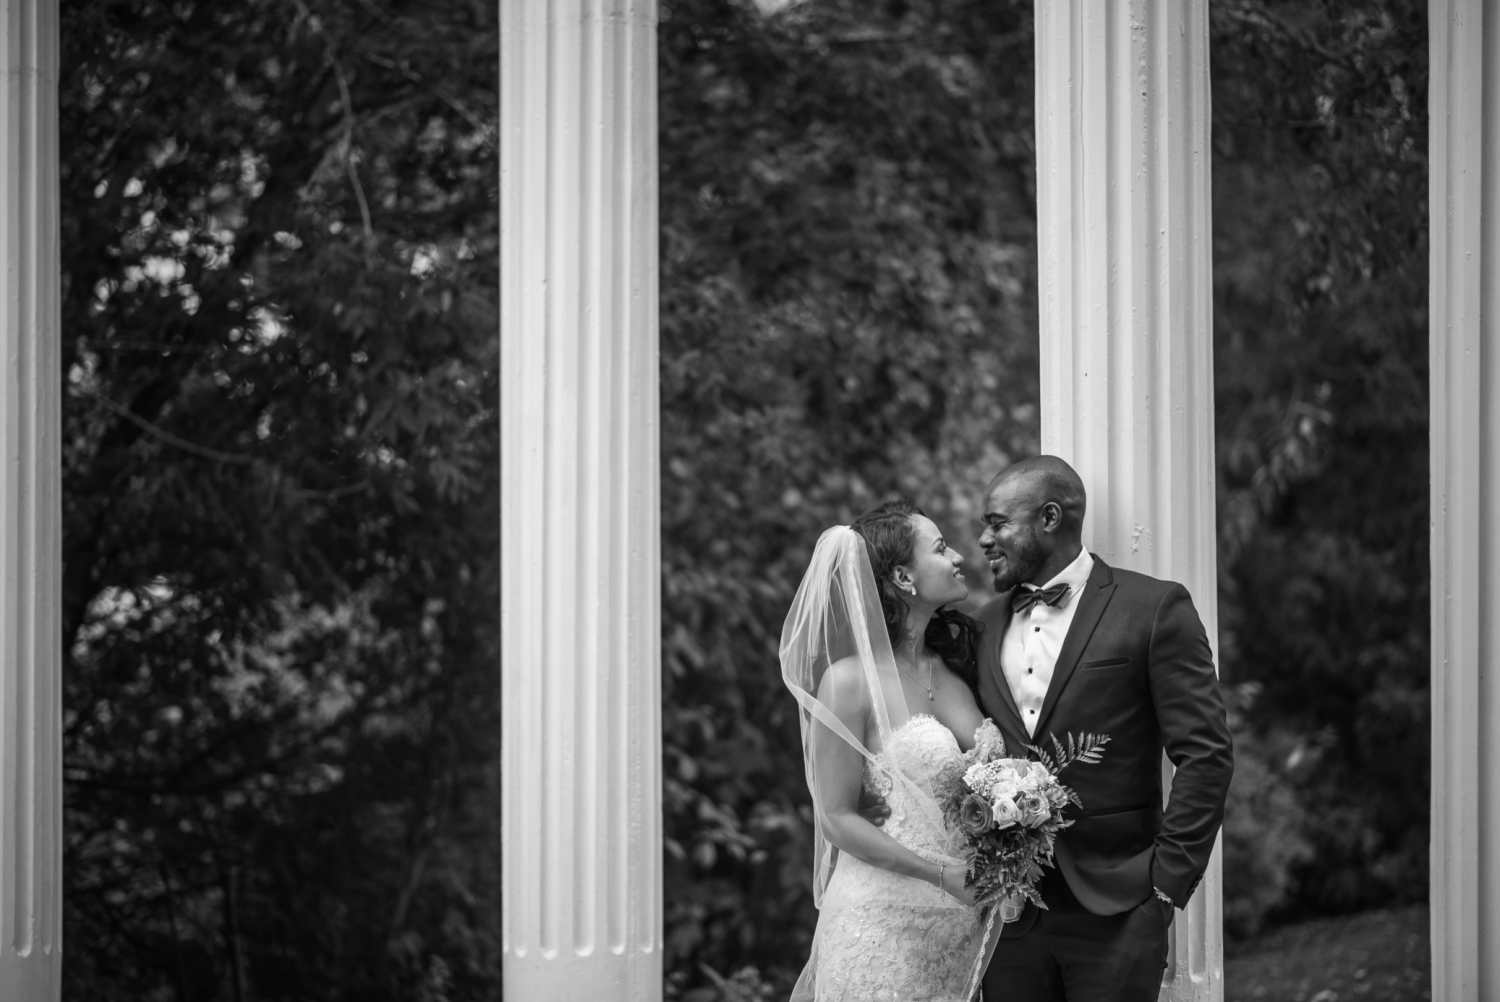 The happy couple, John and Veronica, standing outside, in front of white columns, in a black and white photo.